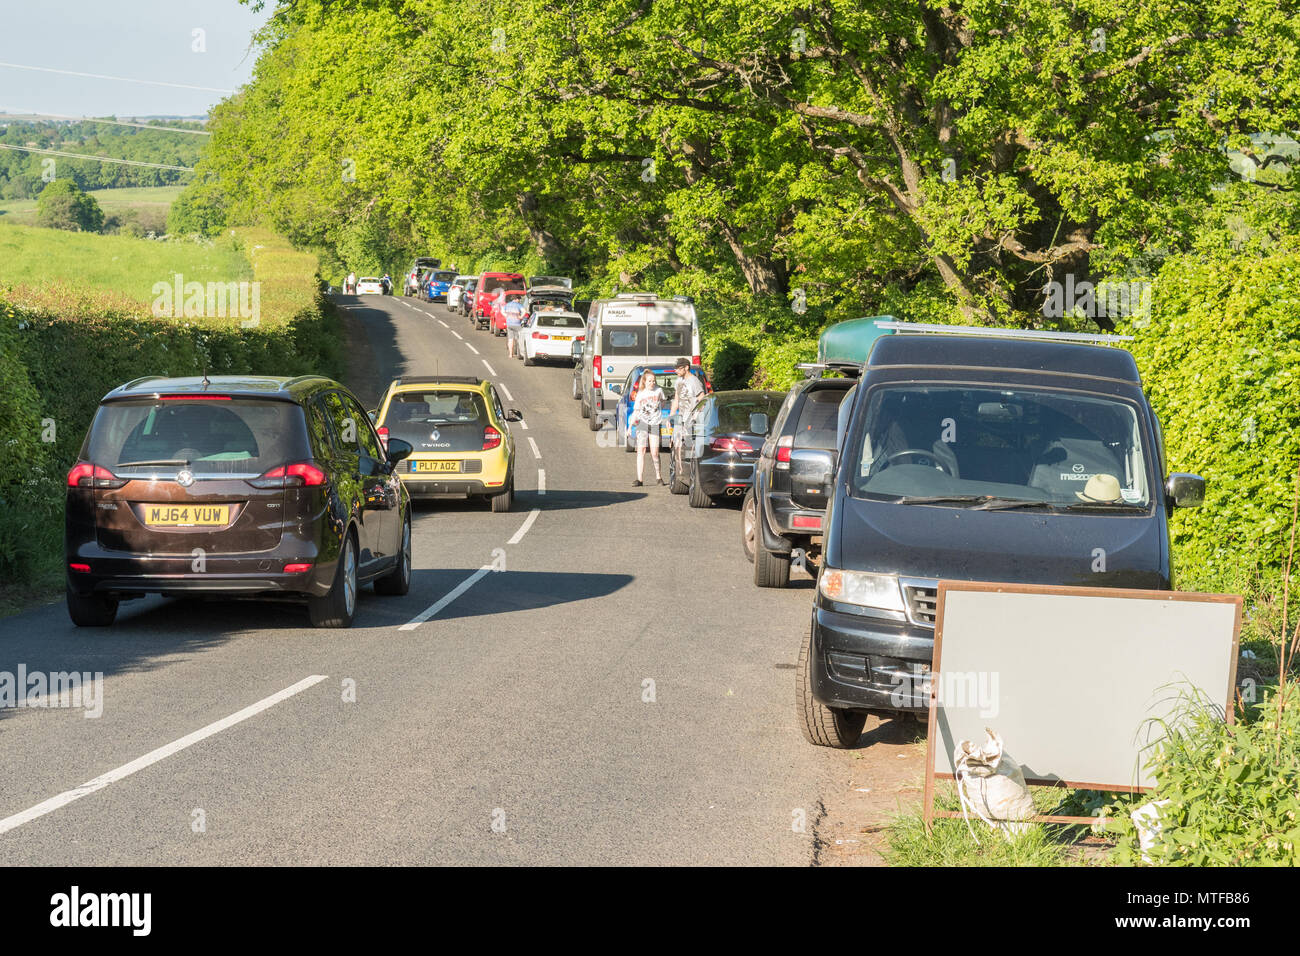 Tourist pressures and car parking problems - cars parked along the B834 road as people visit The Devils Pulpit Finnich Glen, Killearn, Scotland, UK - Stock Image